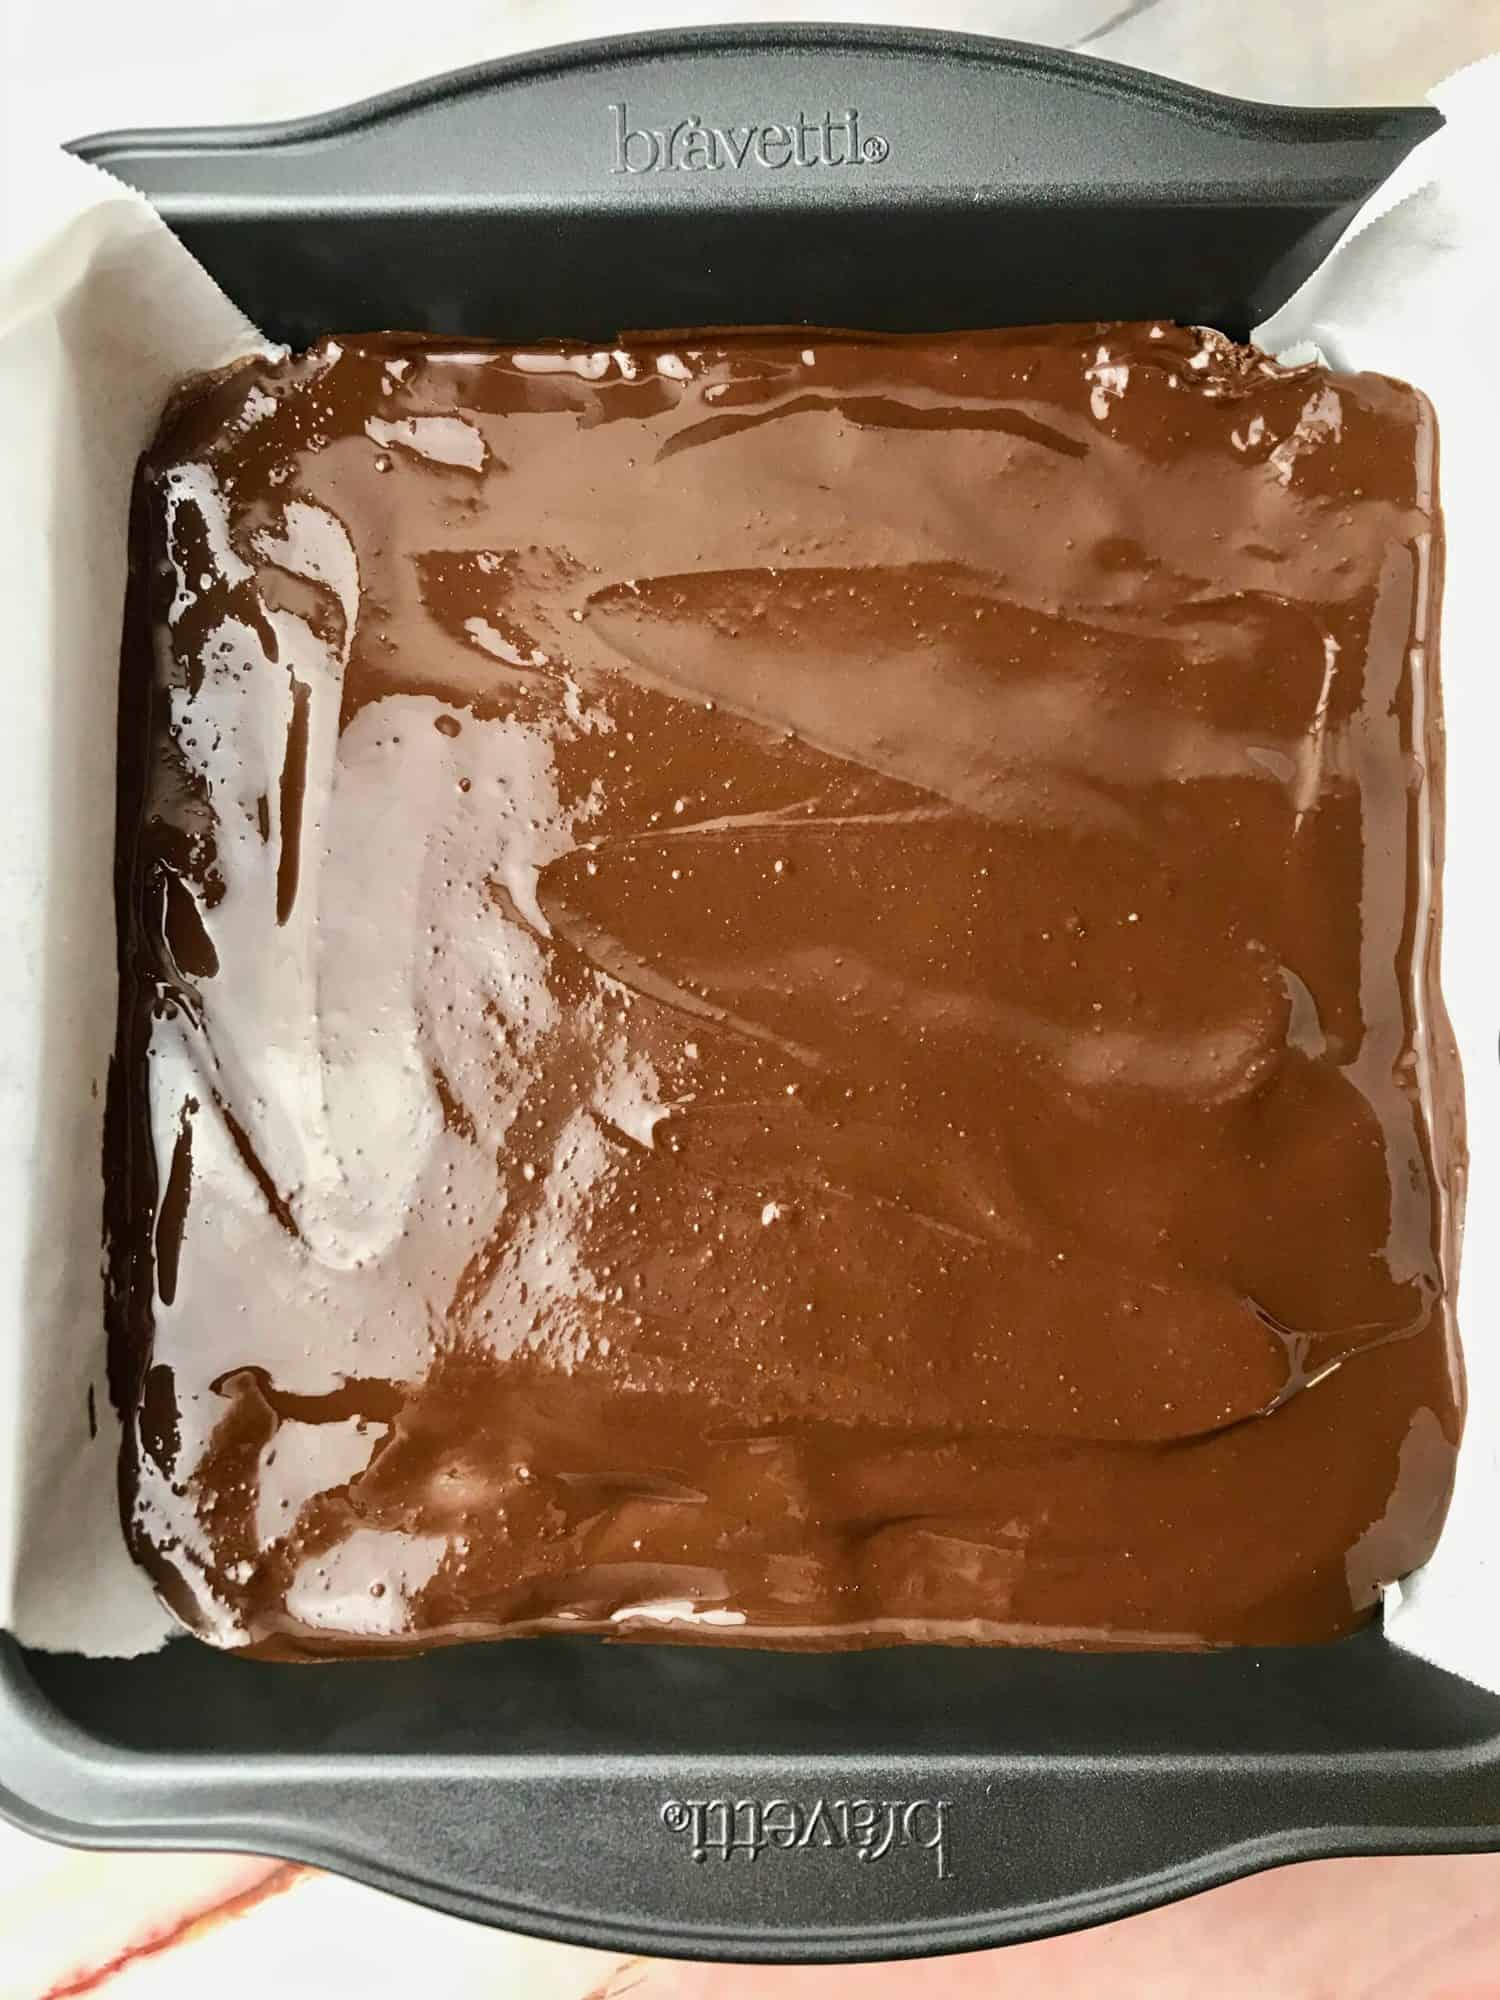 Melted chocolate spread over dough in a square pan.